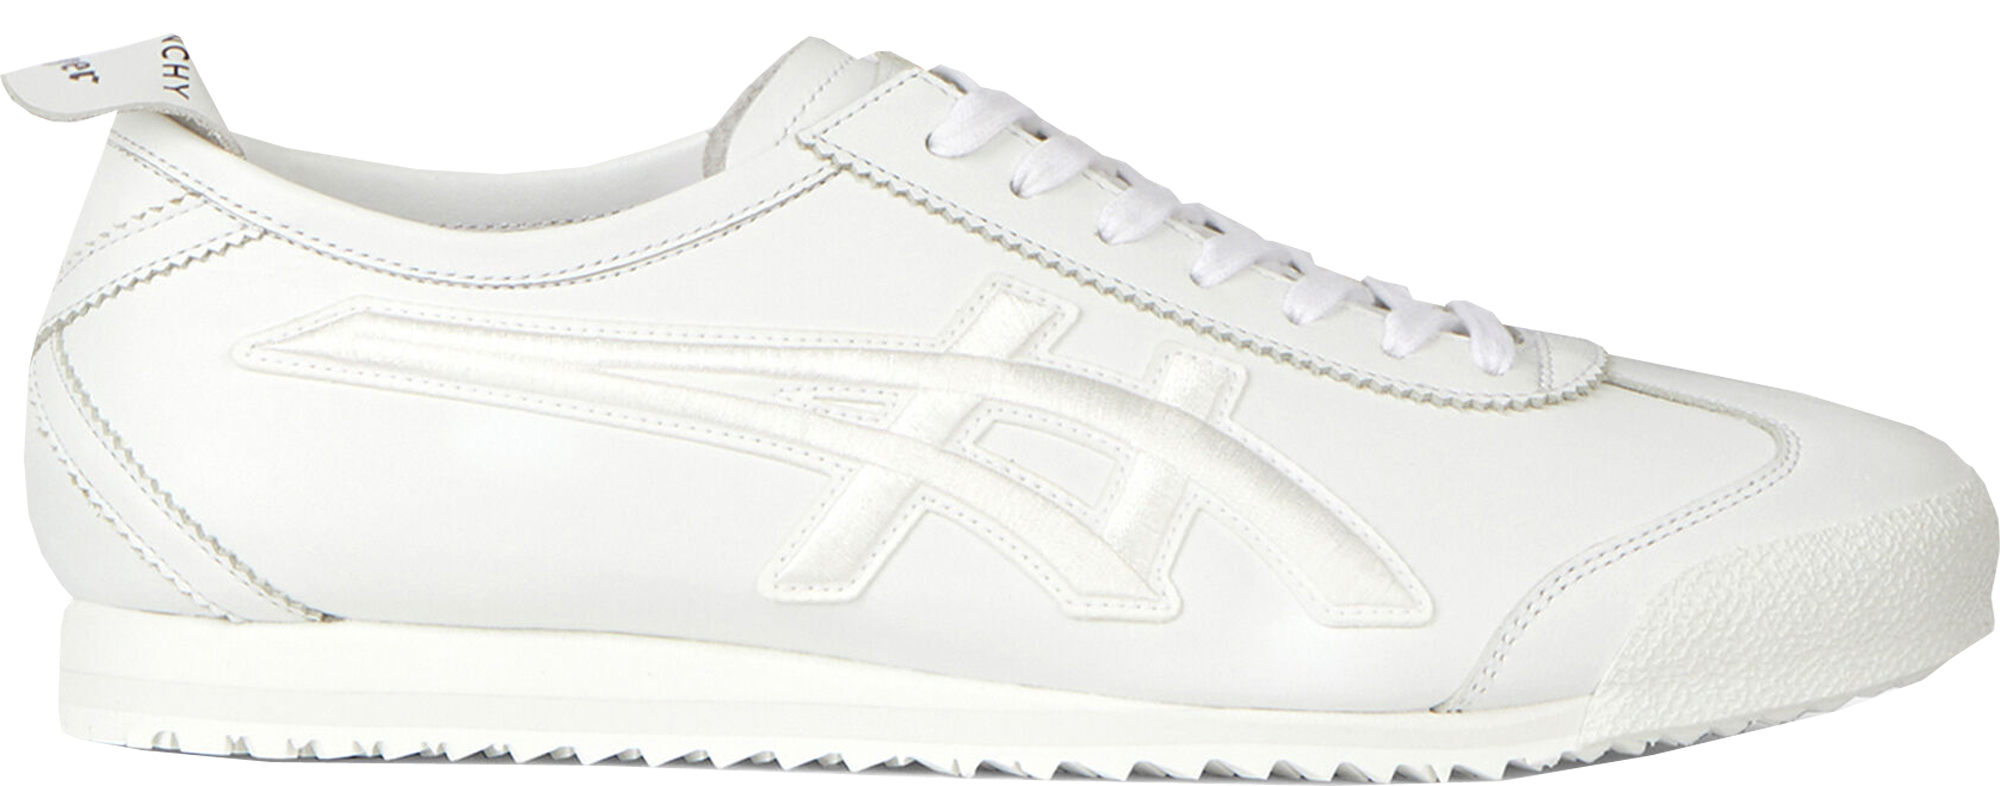 onitsuka tiger mexico 66 white black red zebra white